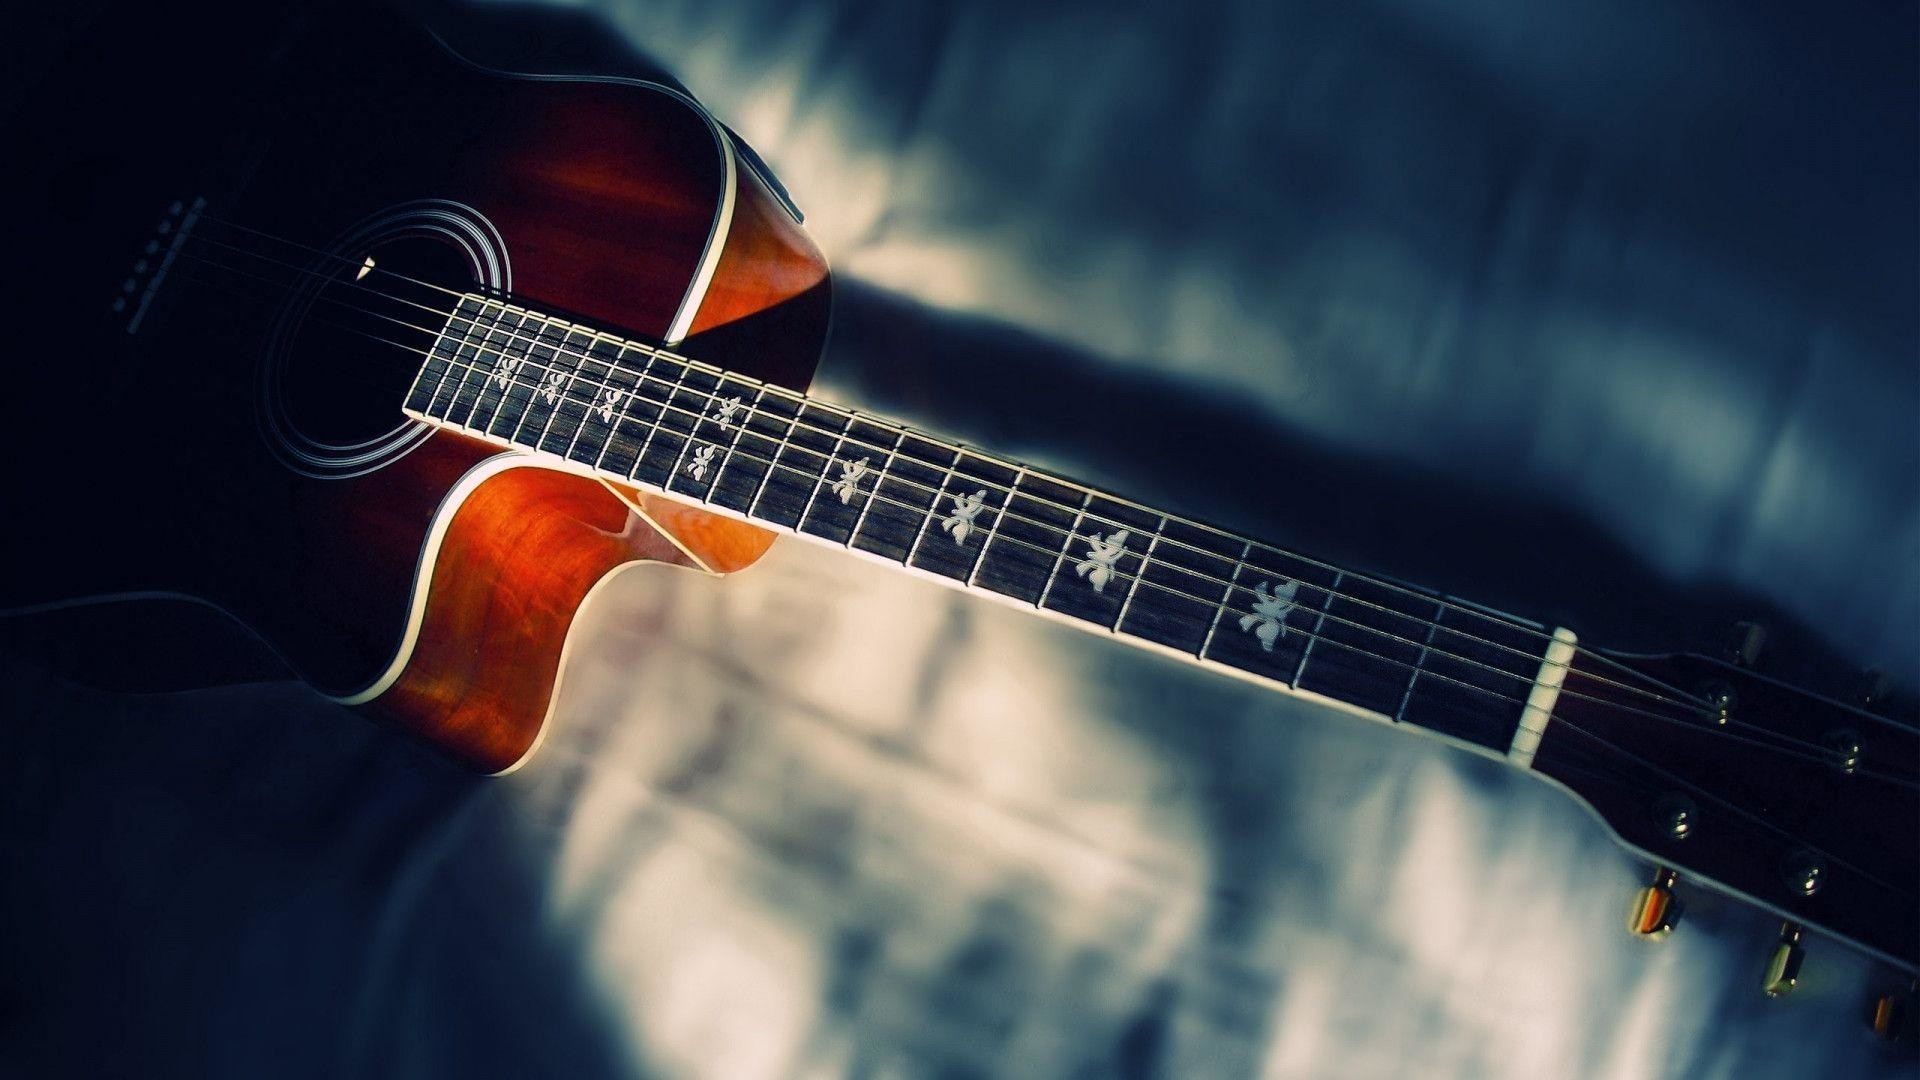 guitar wallpaper hd  â